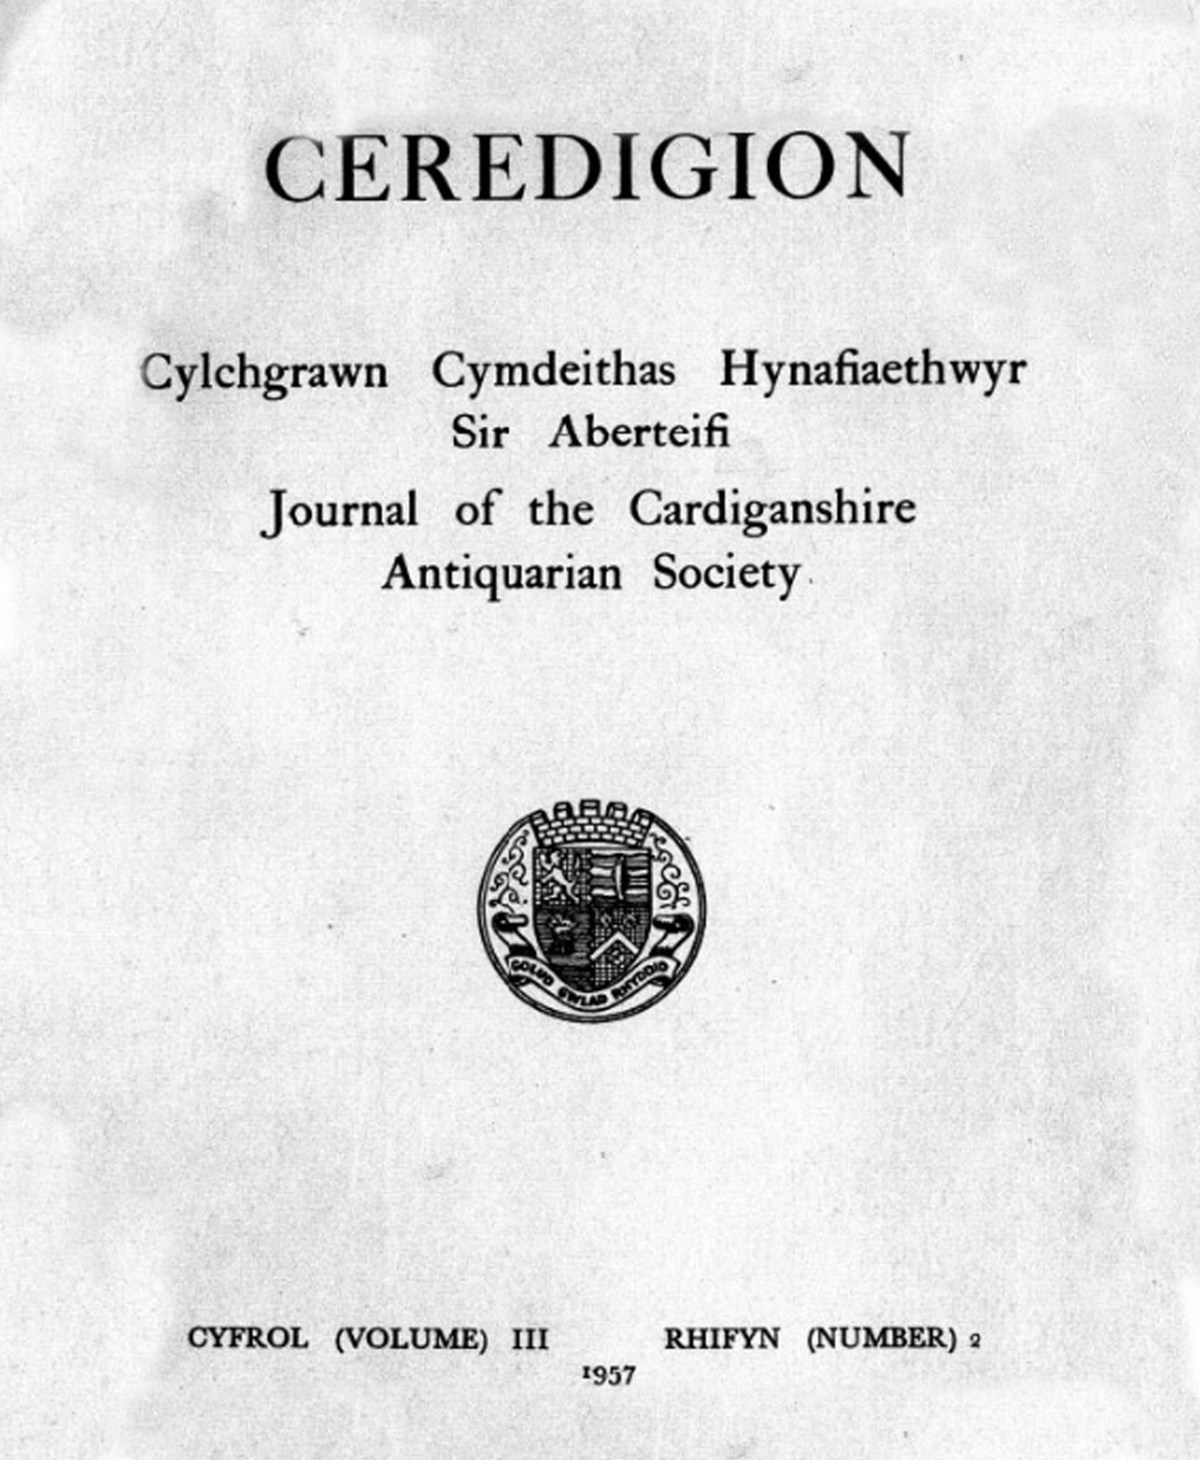 Ceredigion – Journal of the Cardiganshire Antiquarian Society, 1957 Vol III No 2